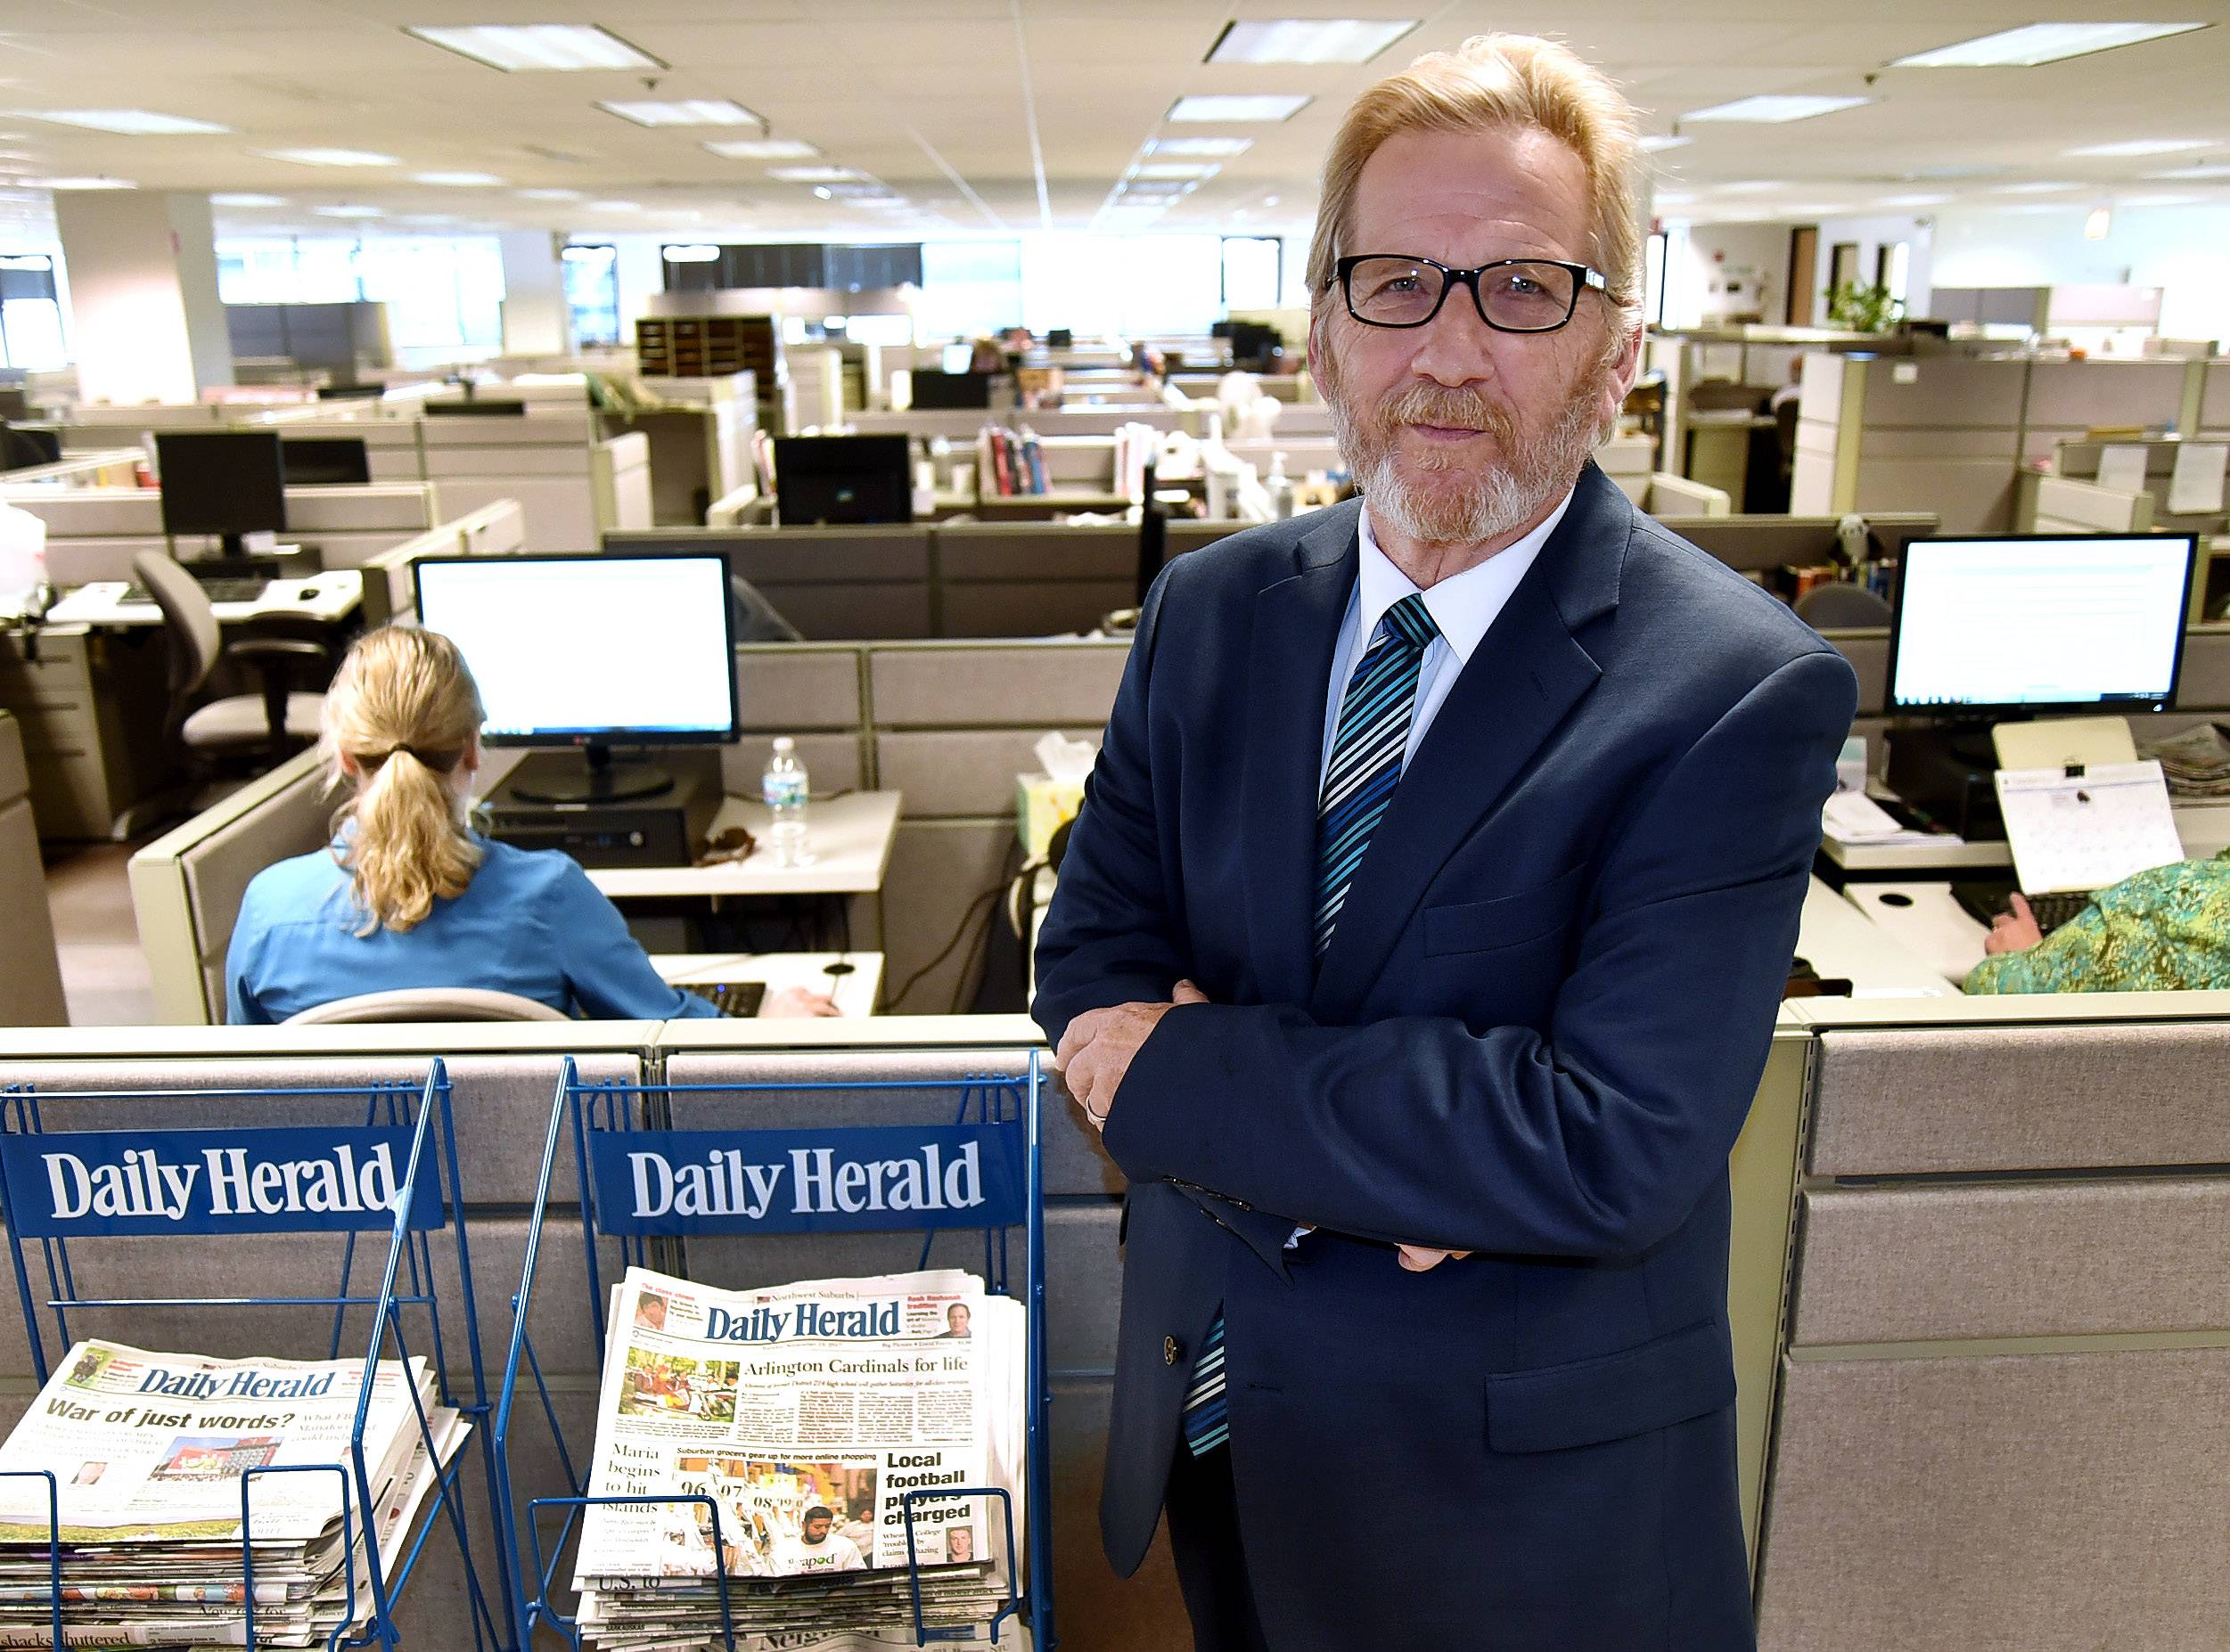 John Lampinen, Daily Herald editor and senior vice president, has spent most of his adult life with the paper.